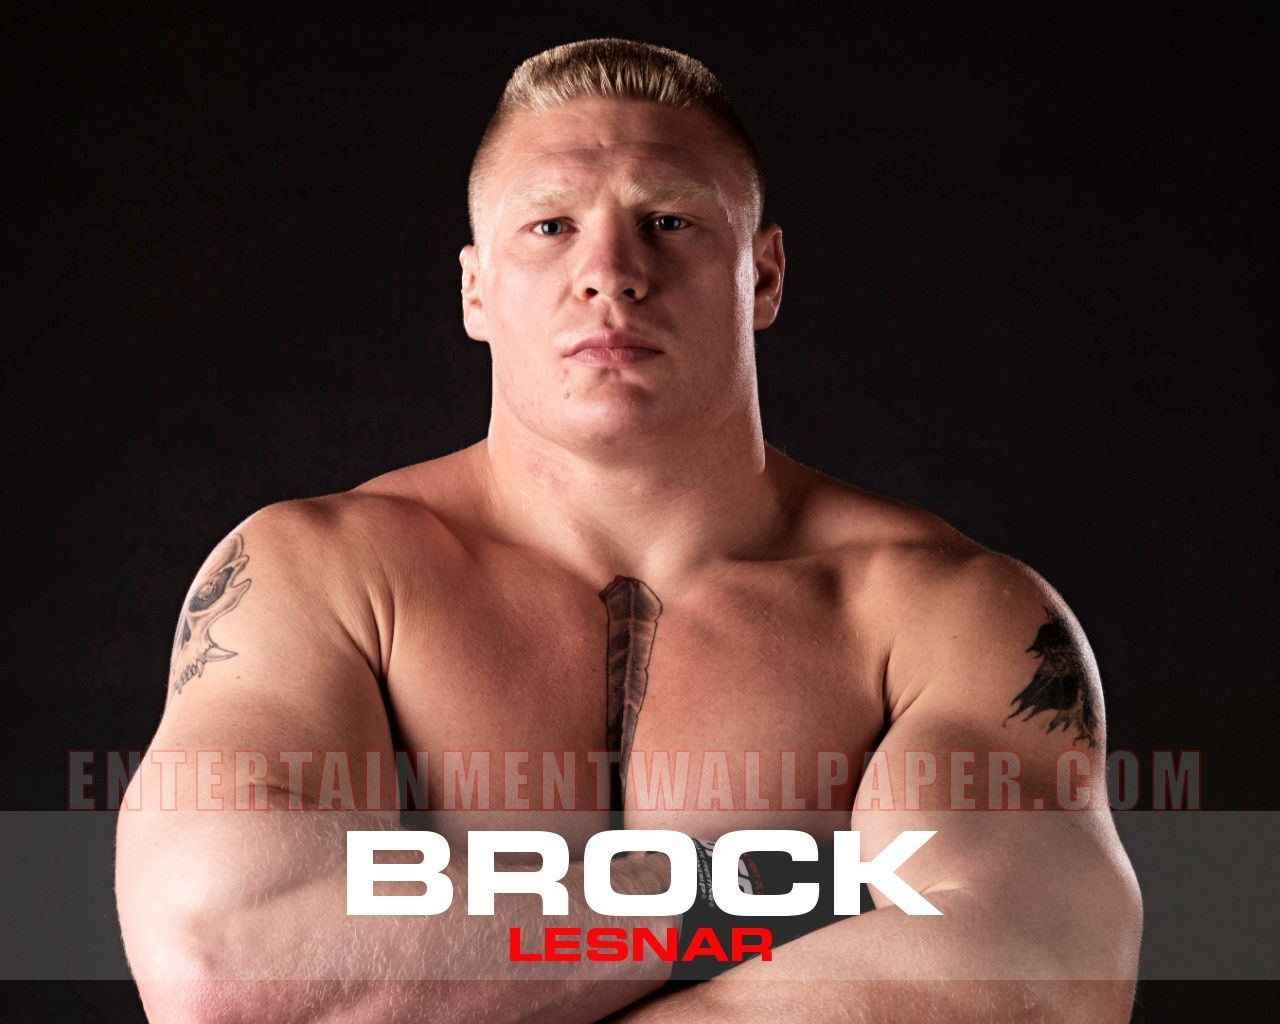 Brock Lesnar Wallpaper HD – 1280 x 1024 pixels – 129 kB